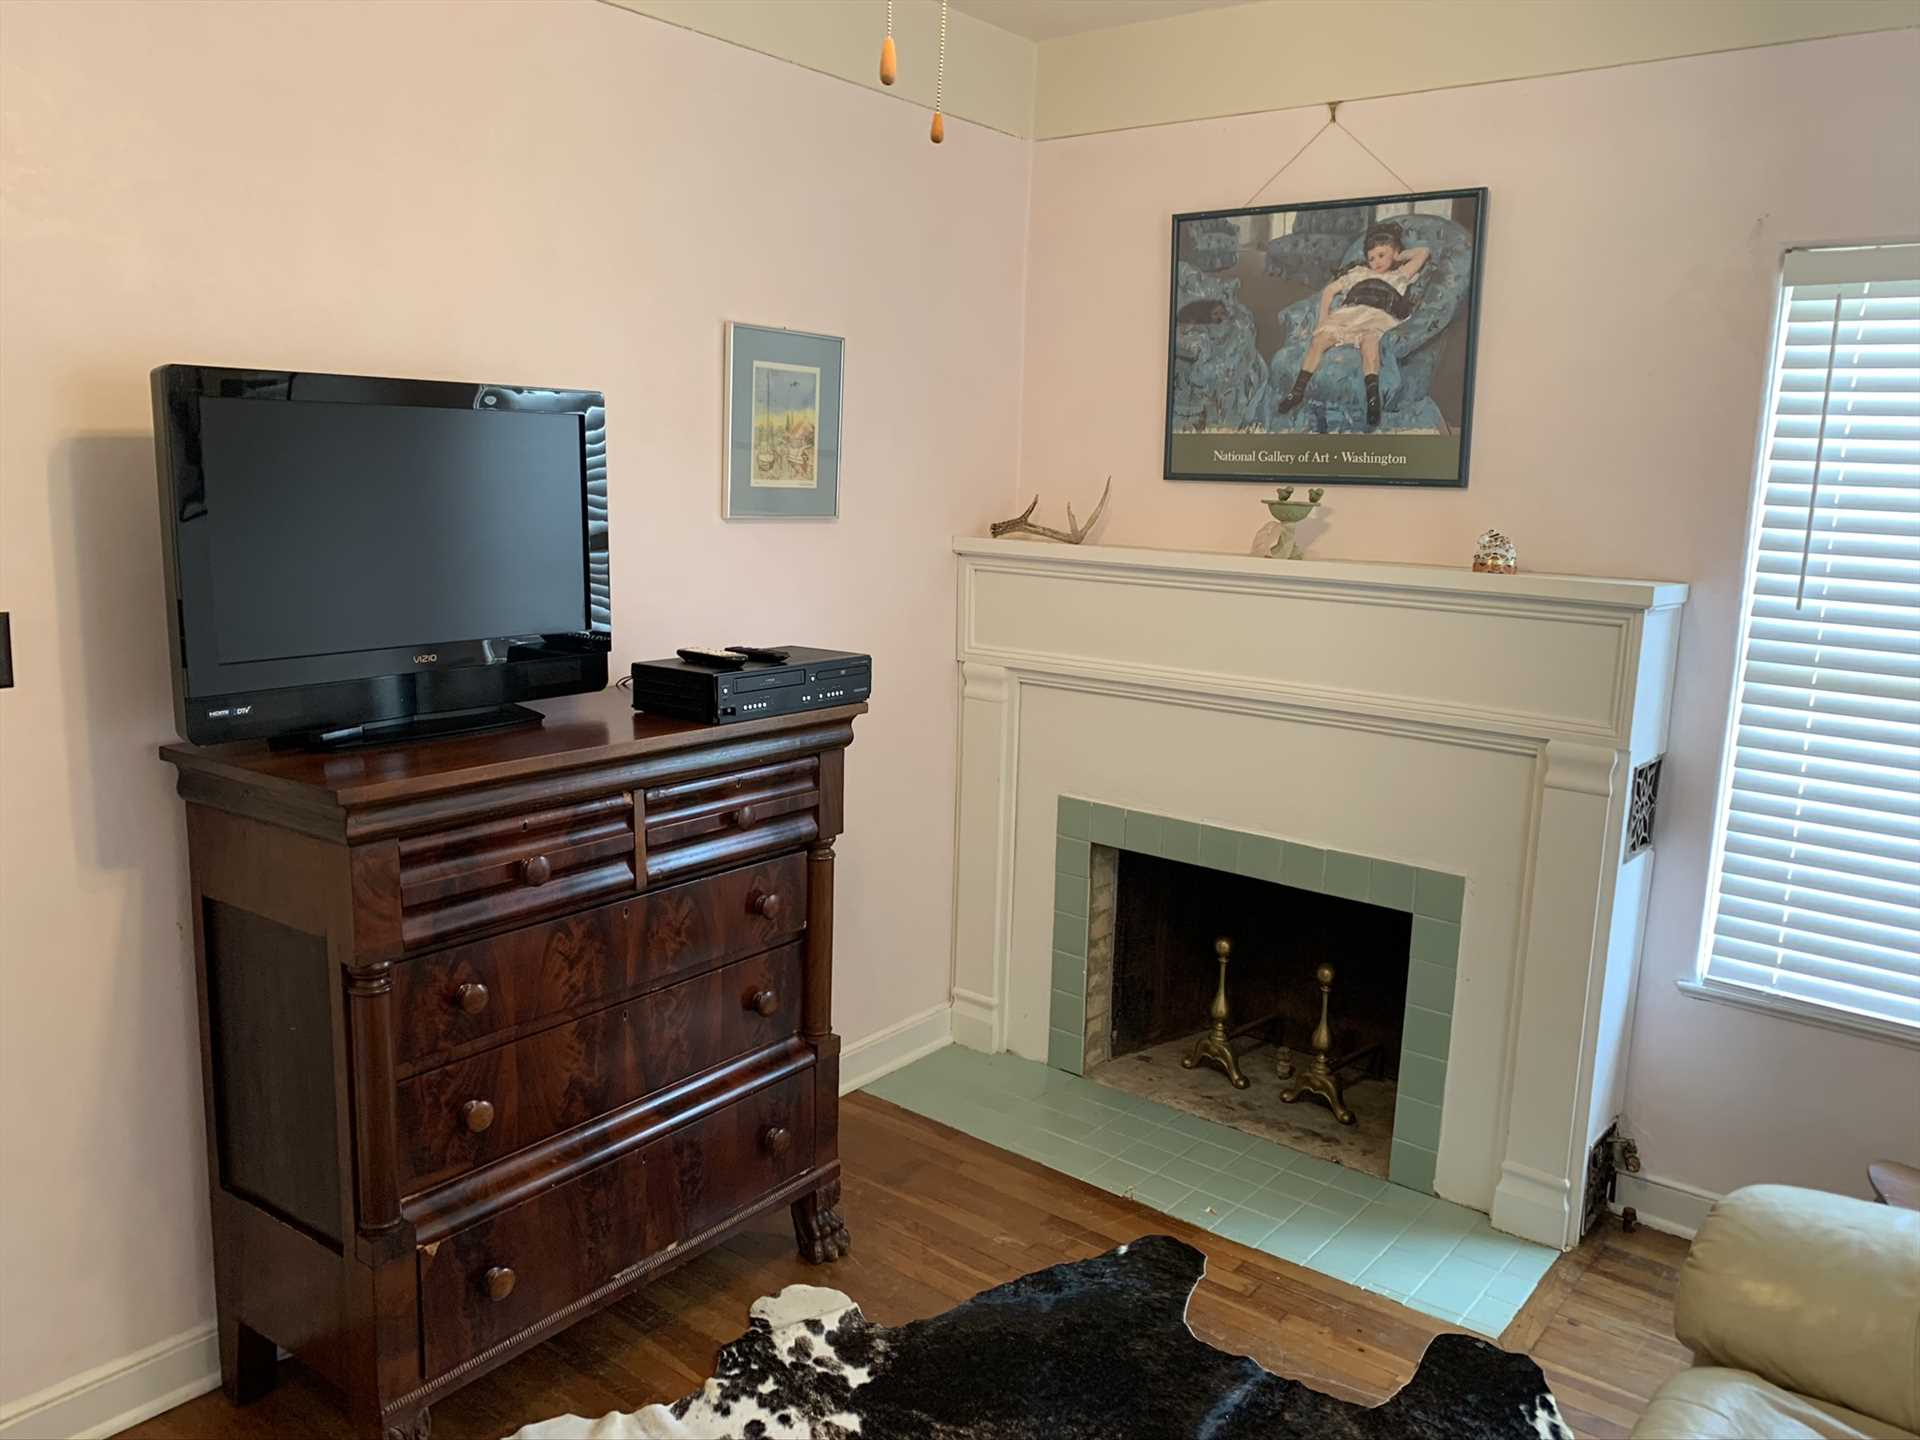 The upstairs TV room includes a TV (thus the room's name!) with a DVD player, as well as Wifi Internet service.